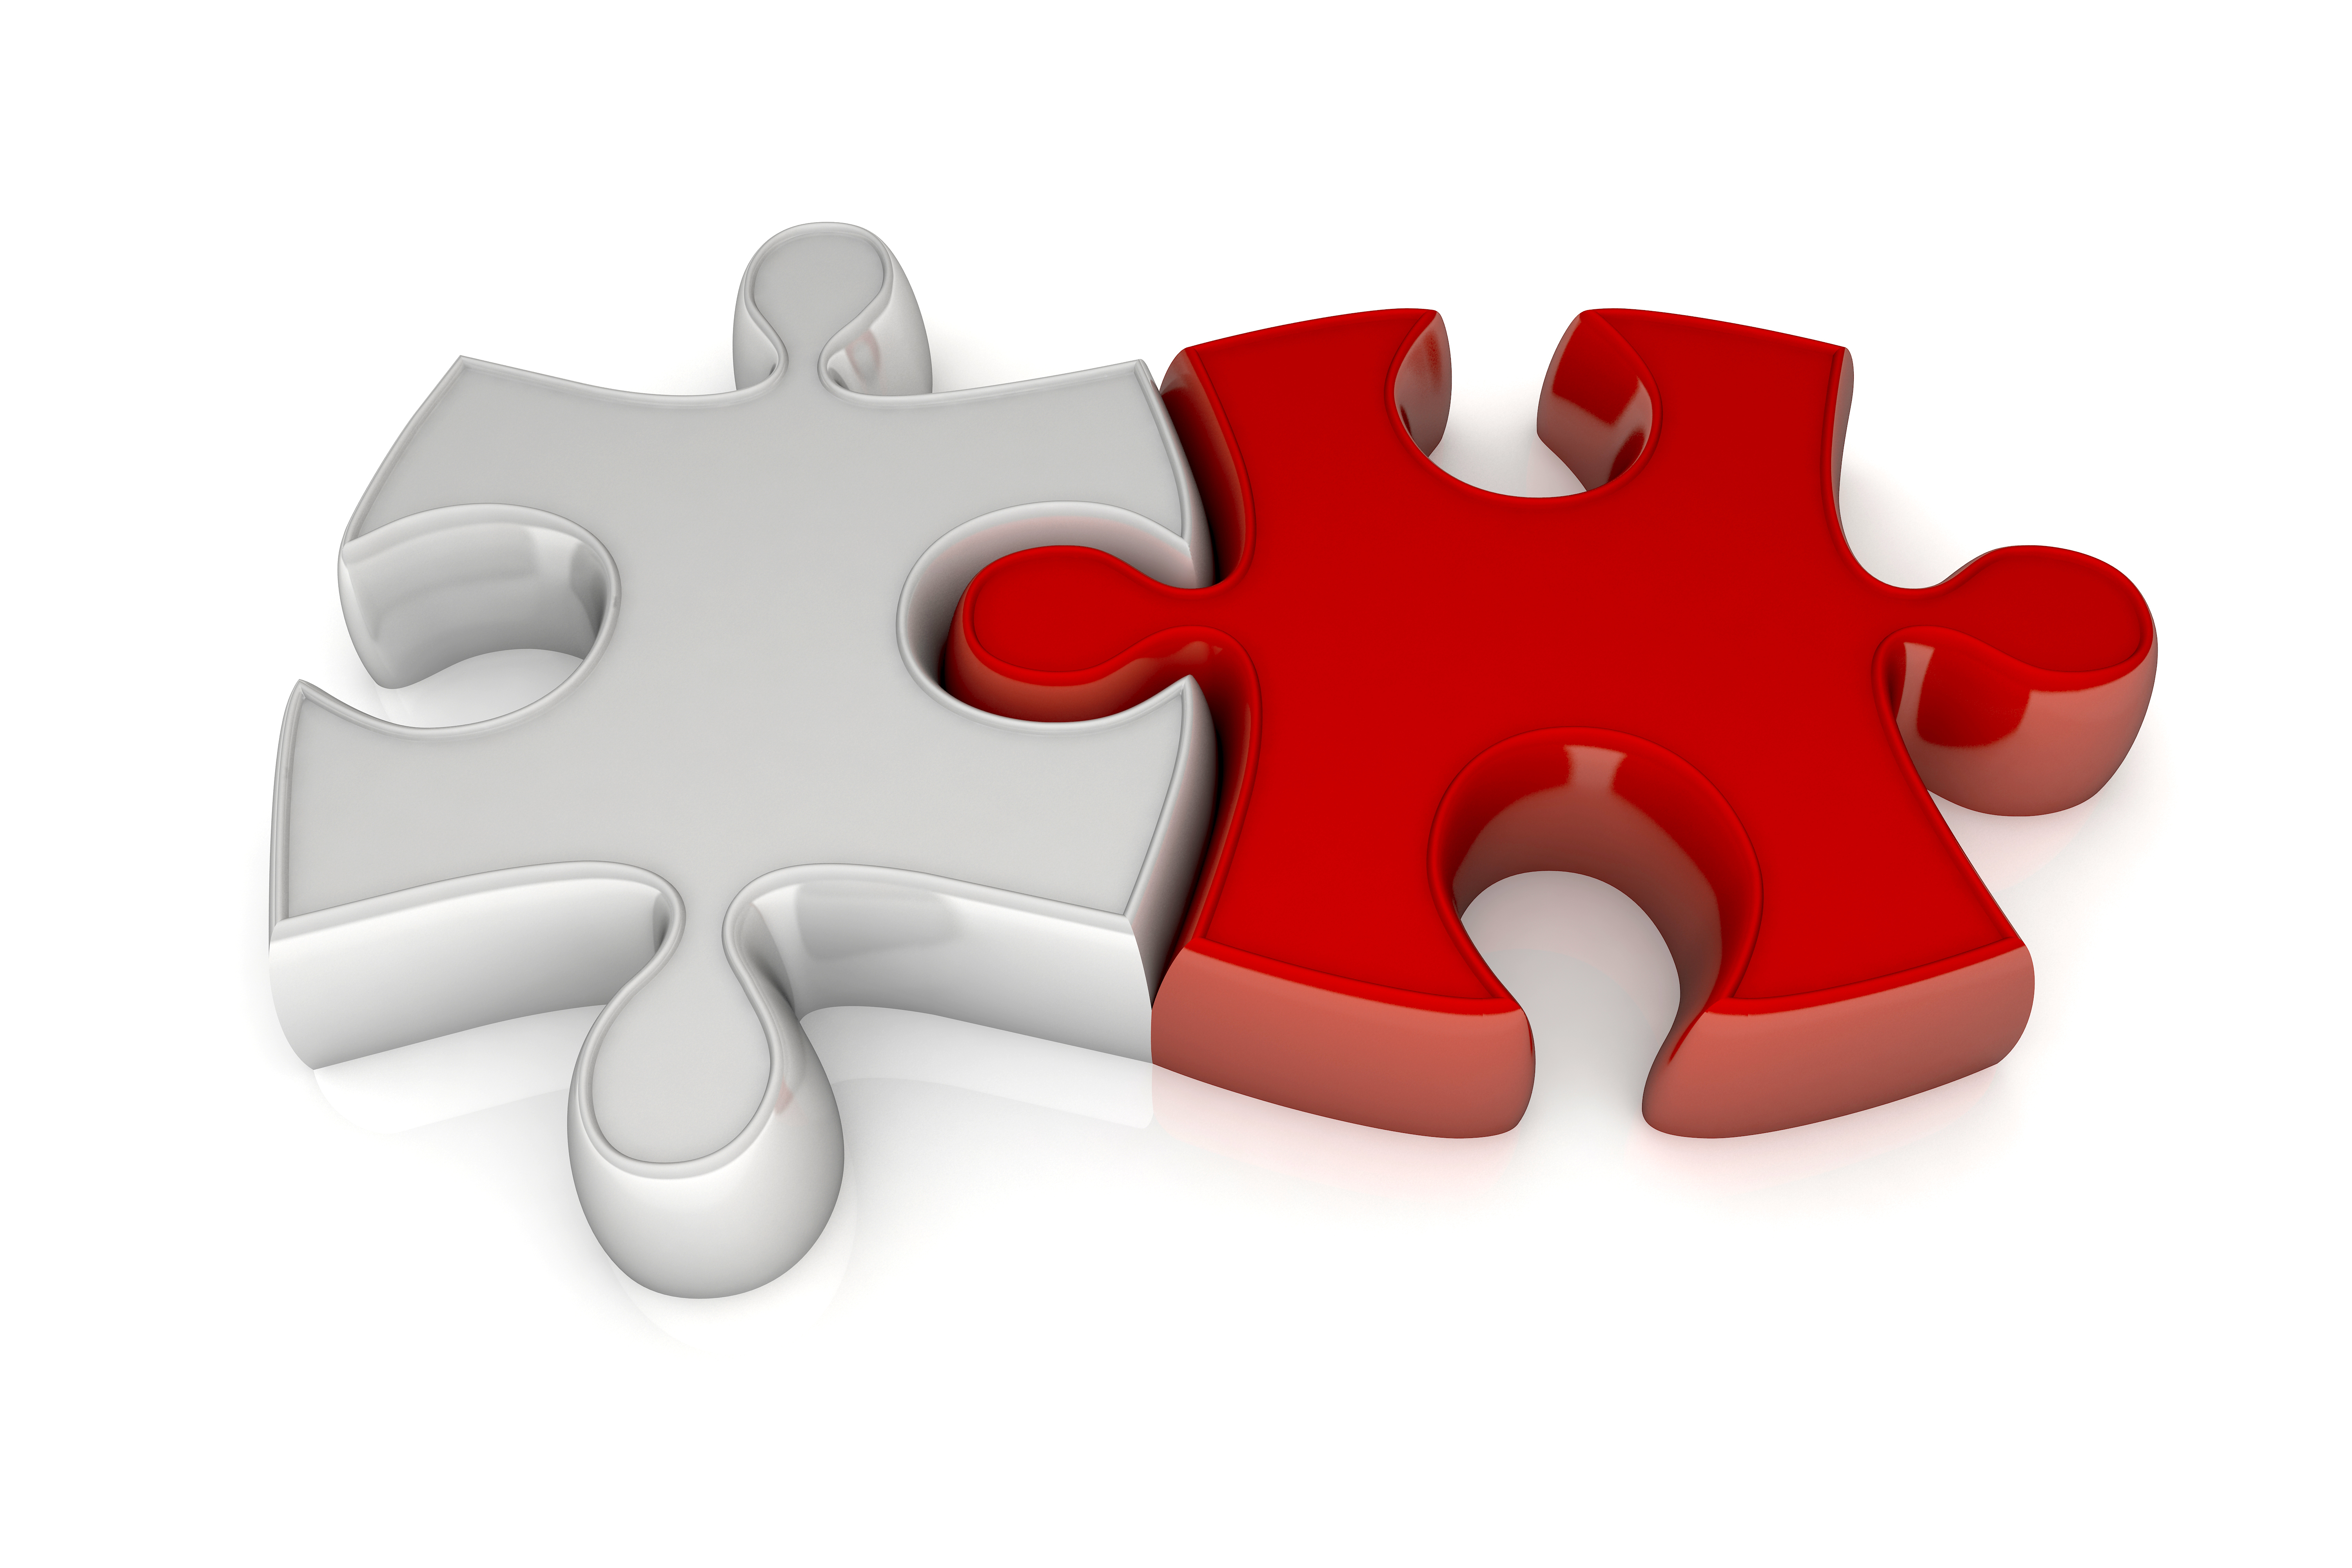 pass-through grants and collaboration represented by joined red and white puzzle pieces